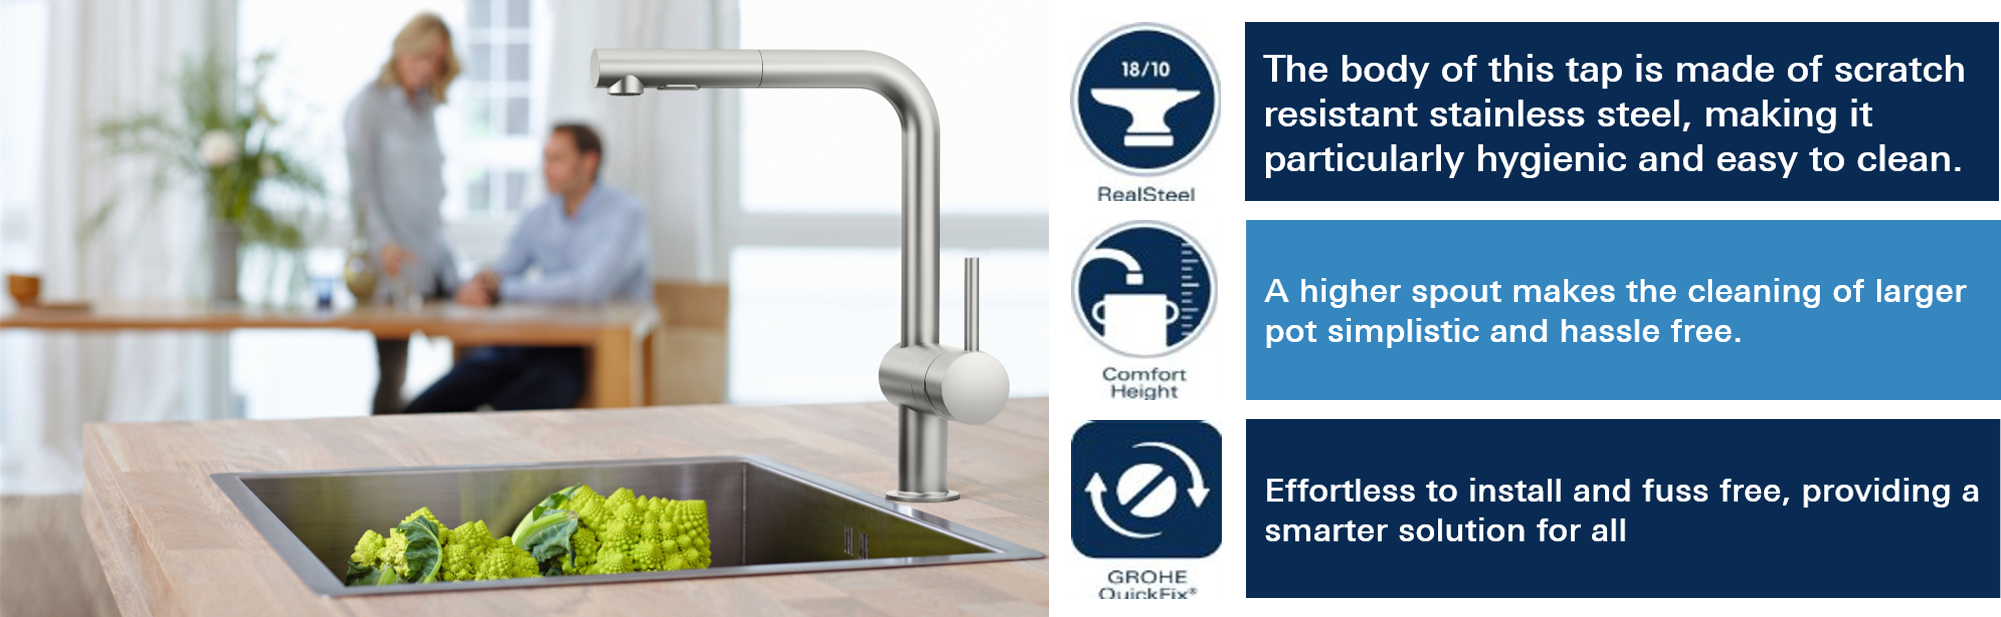 Old Fashioned Grohe Sink Taps Composition - Bathtub Ideas - dilata.info